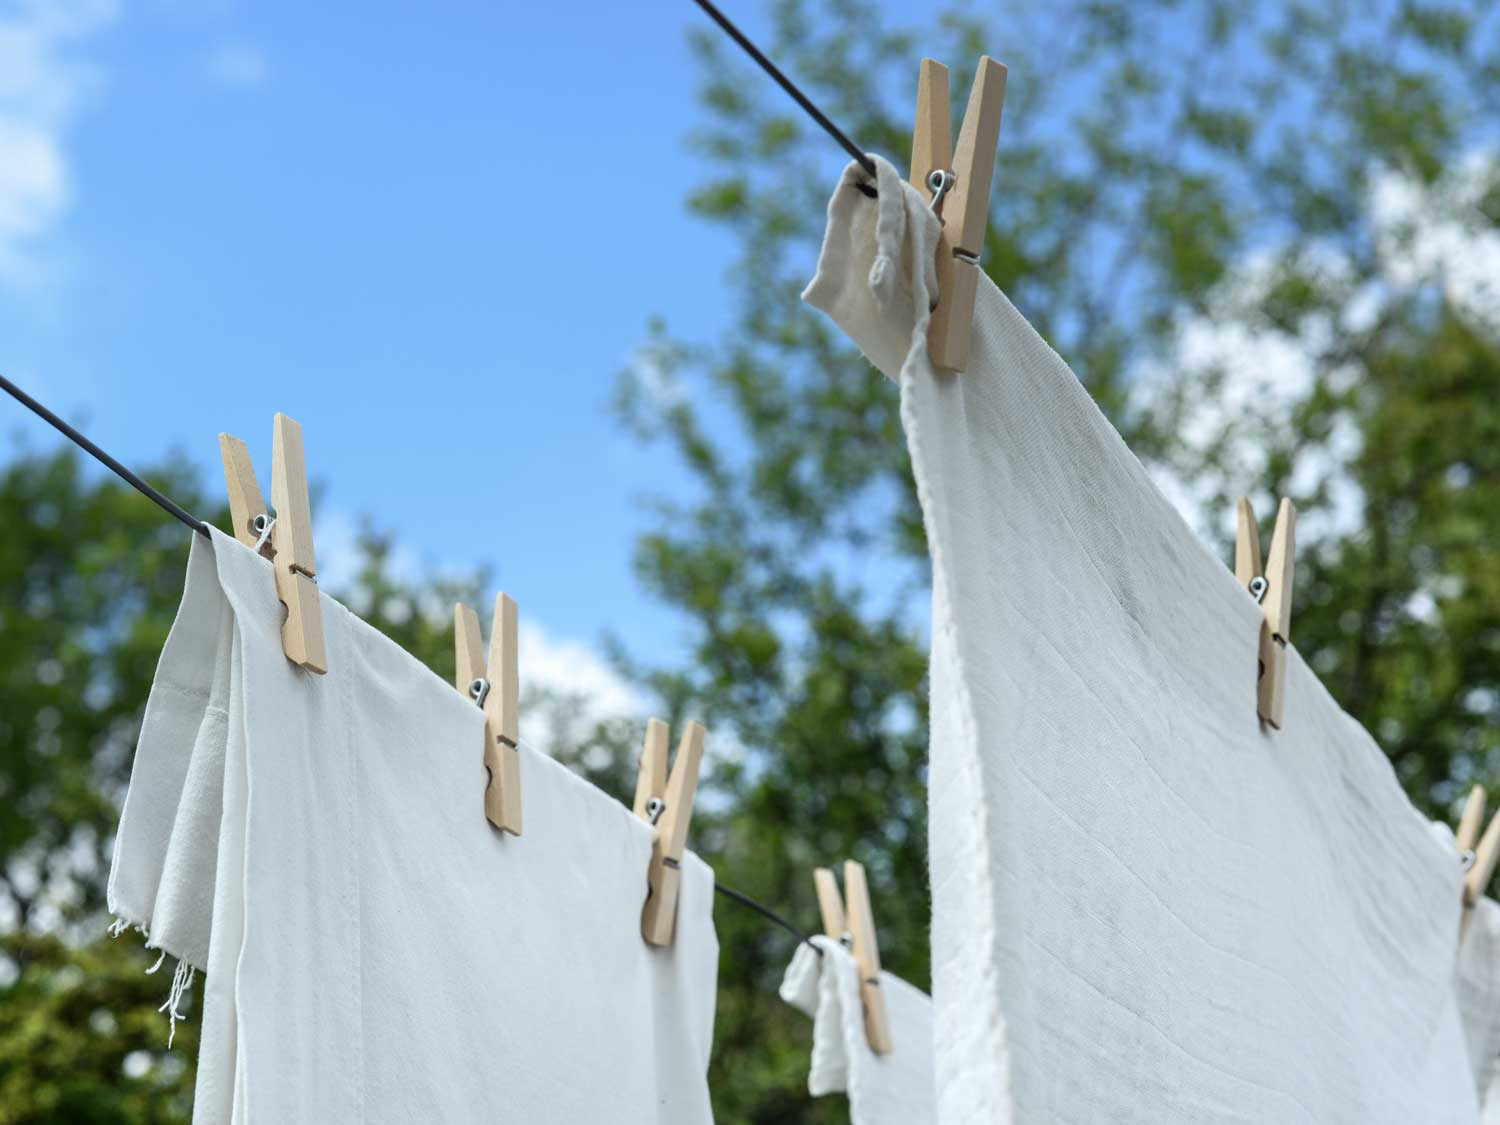 Towel linens hanging to dry.